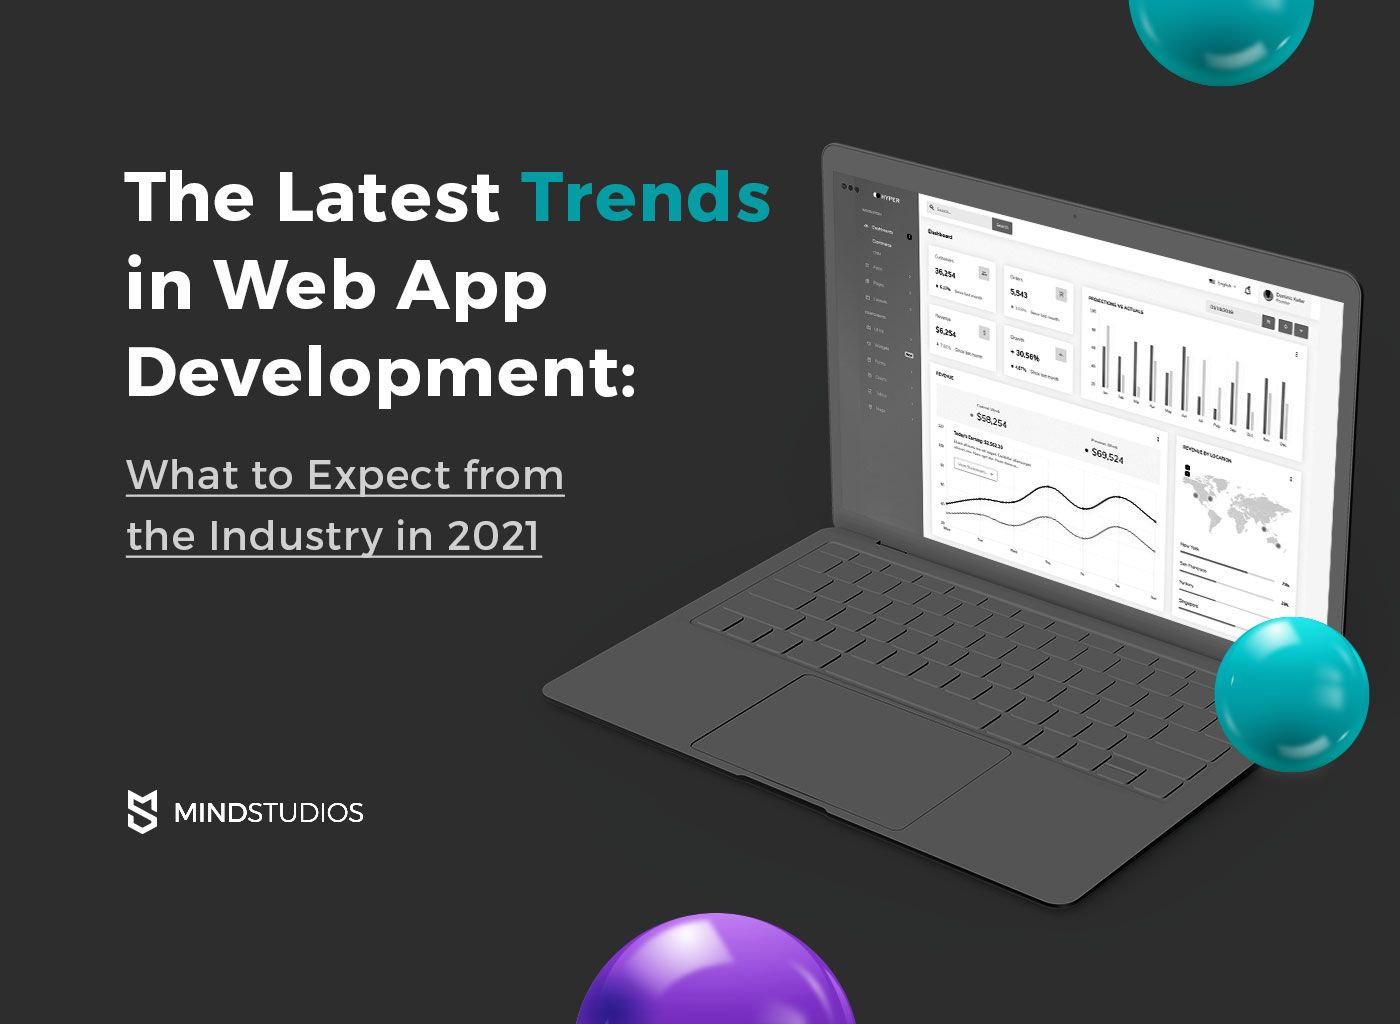 The Latest Trends in Web App Development for 2021: What to Expect from the Industry